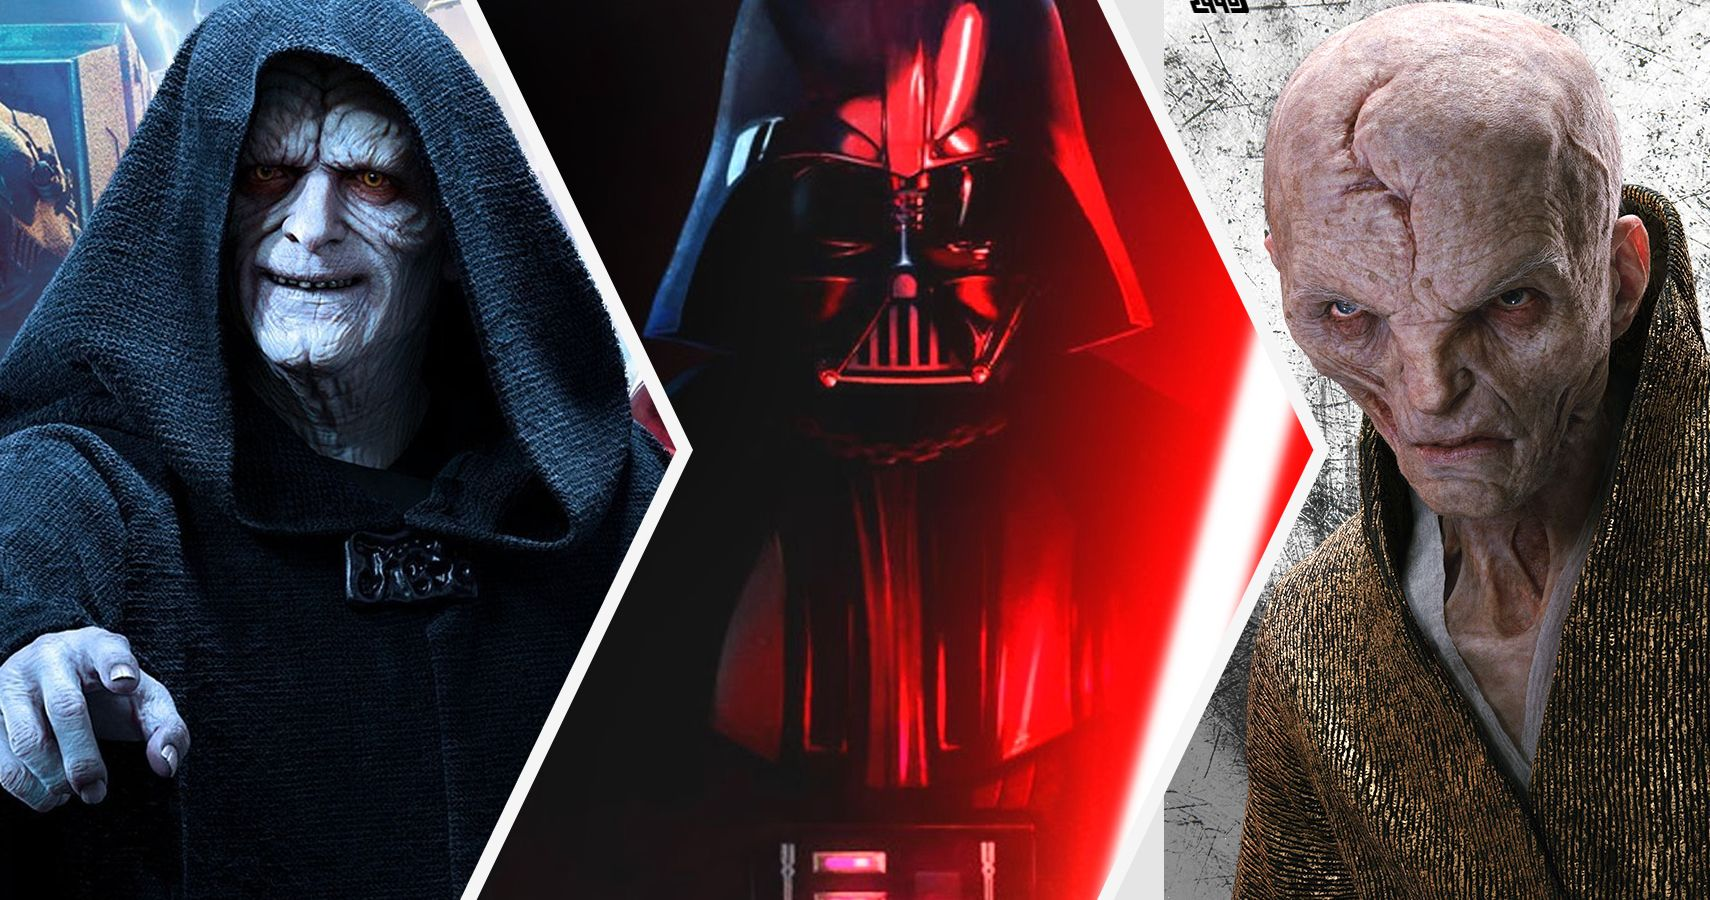 Empire Strikes Back >> Star Wars: Things Everyone Gets Wrong About Darth Vader